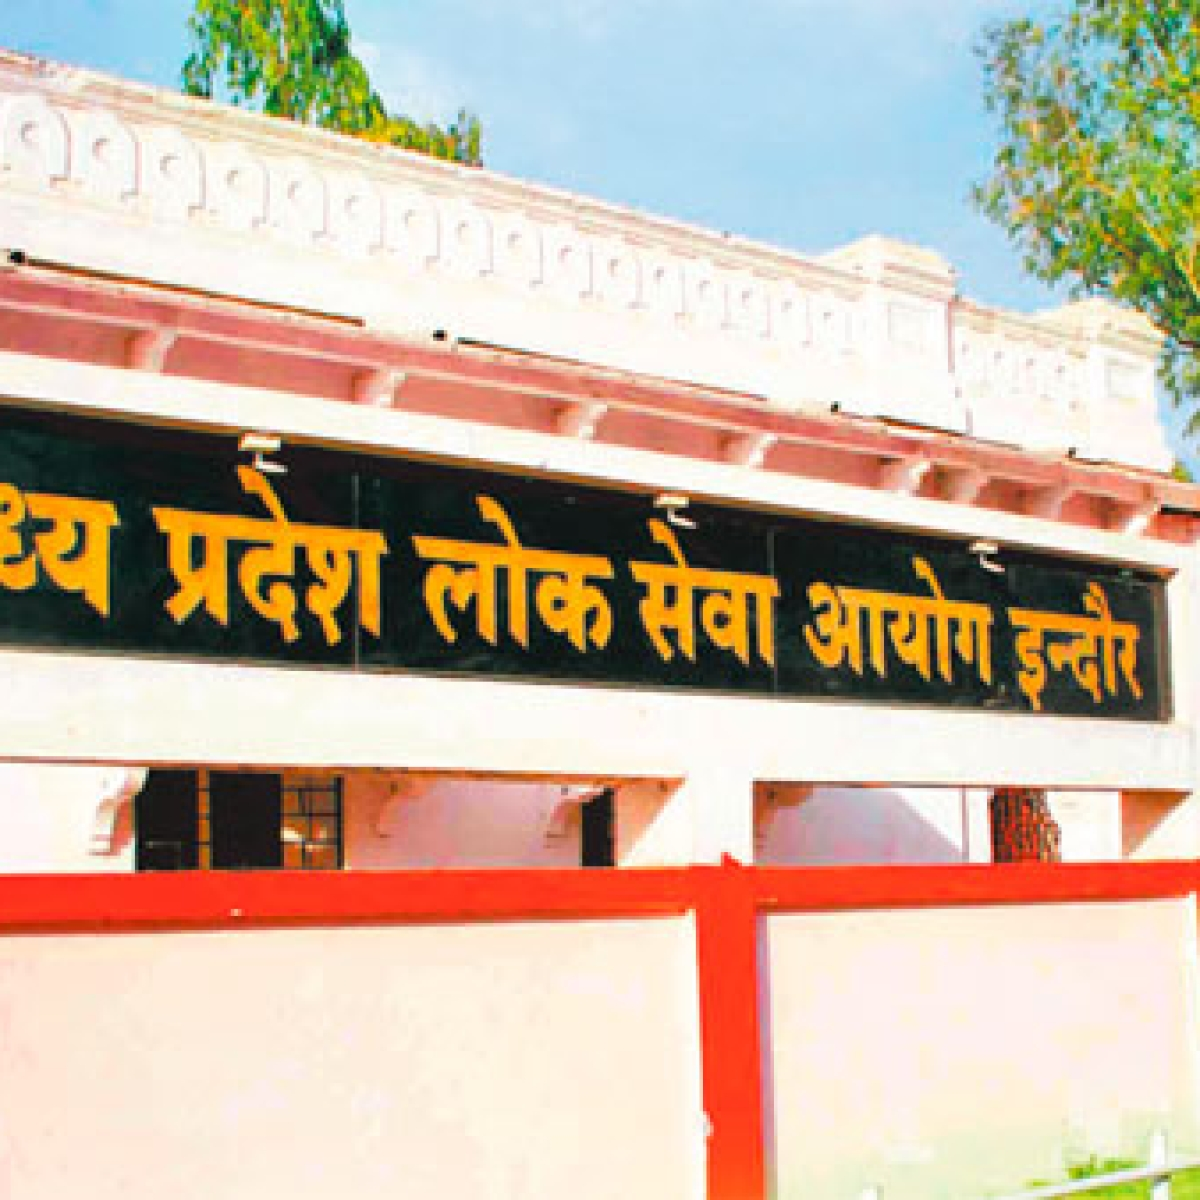 Indore: MPPSC appoints two Vyapam 'tainted' as observers, withdraws later